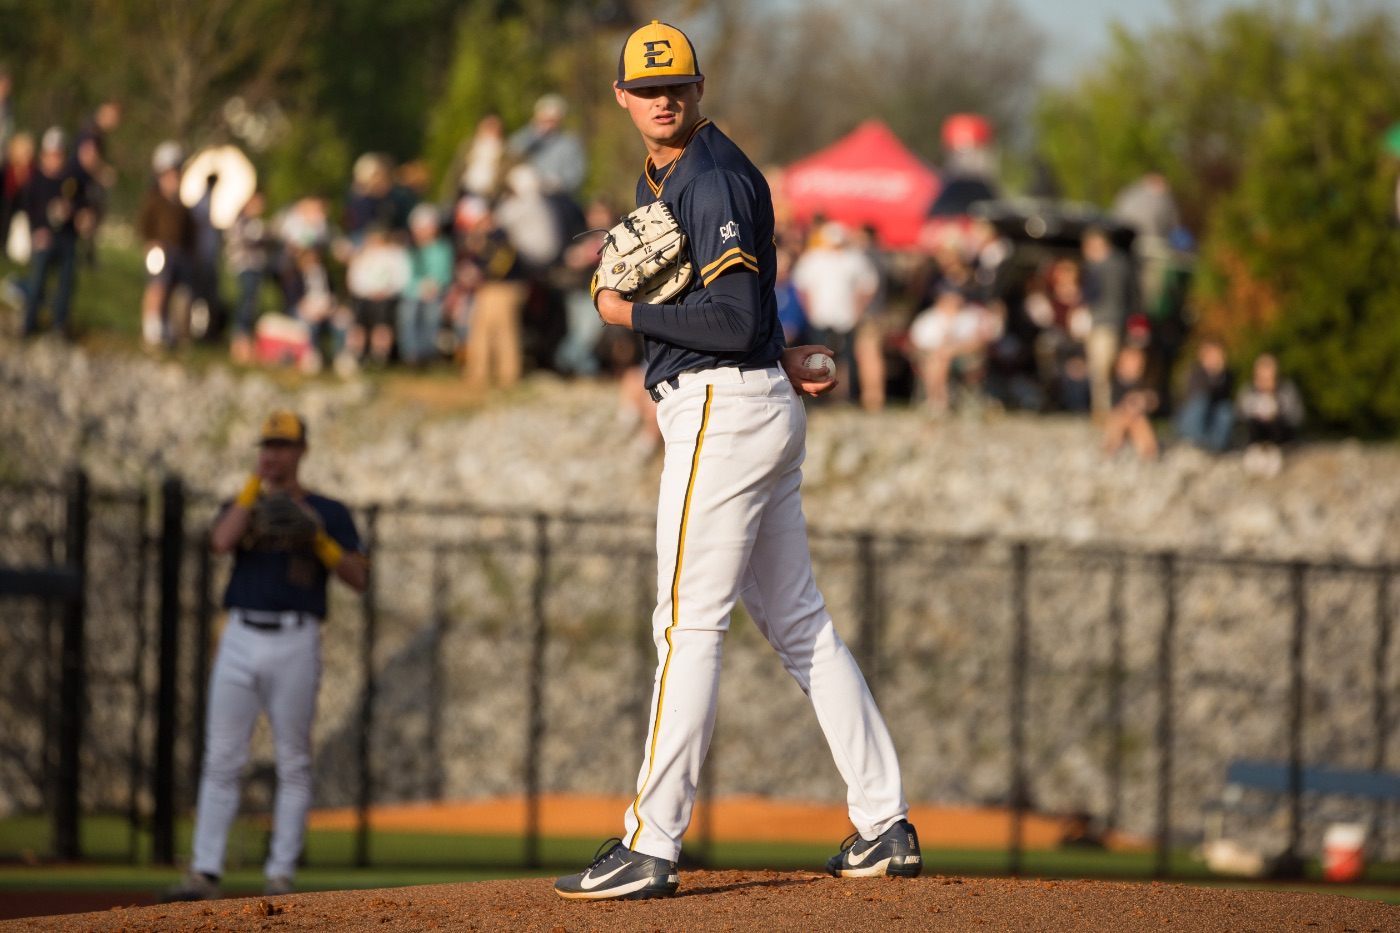 Bucs travel to Tulane for non-conference series